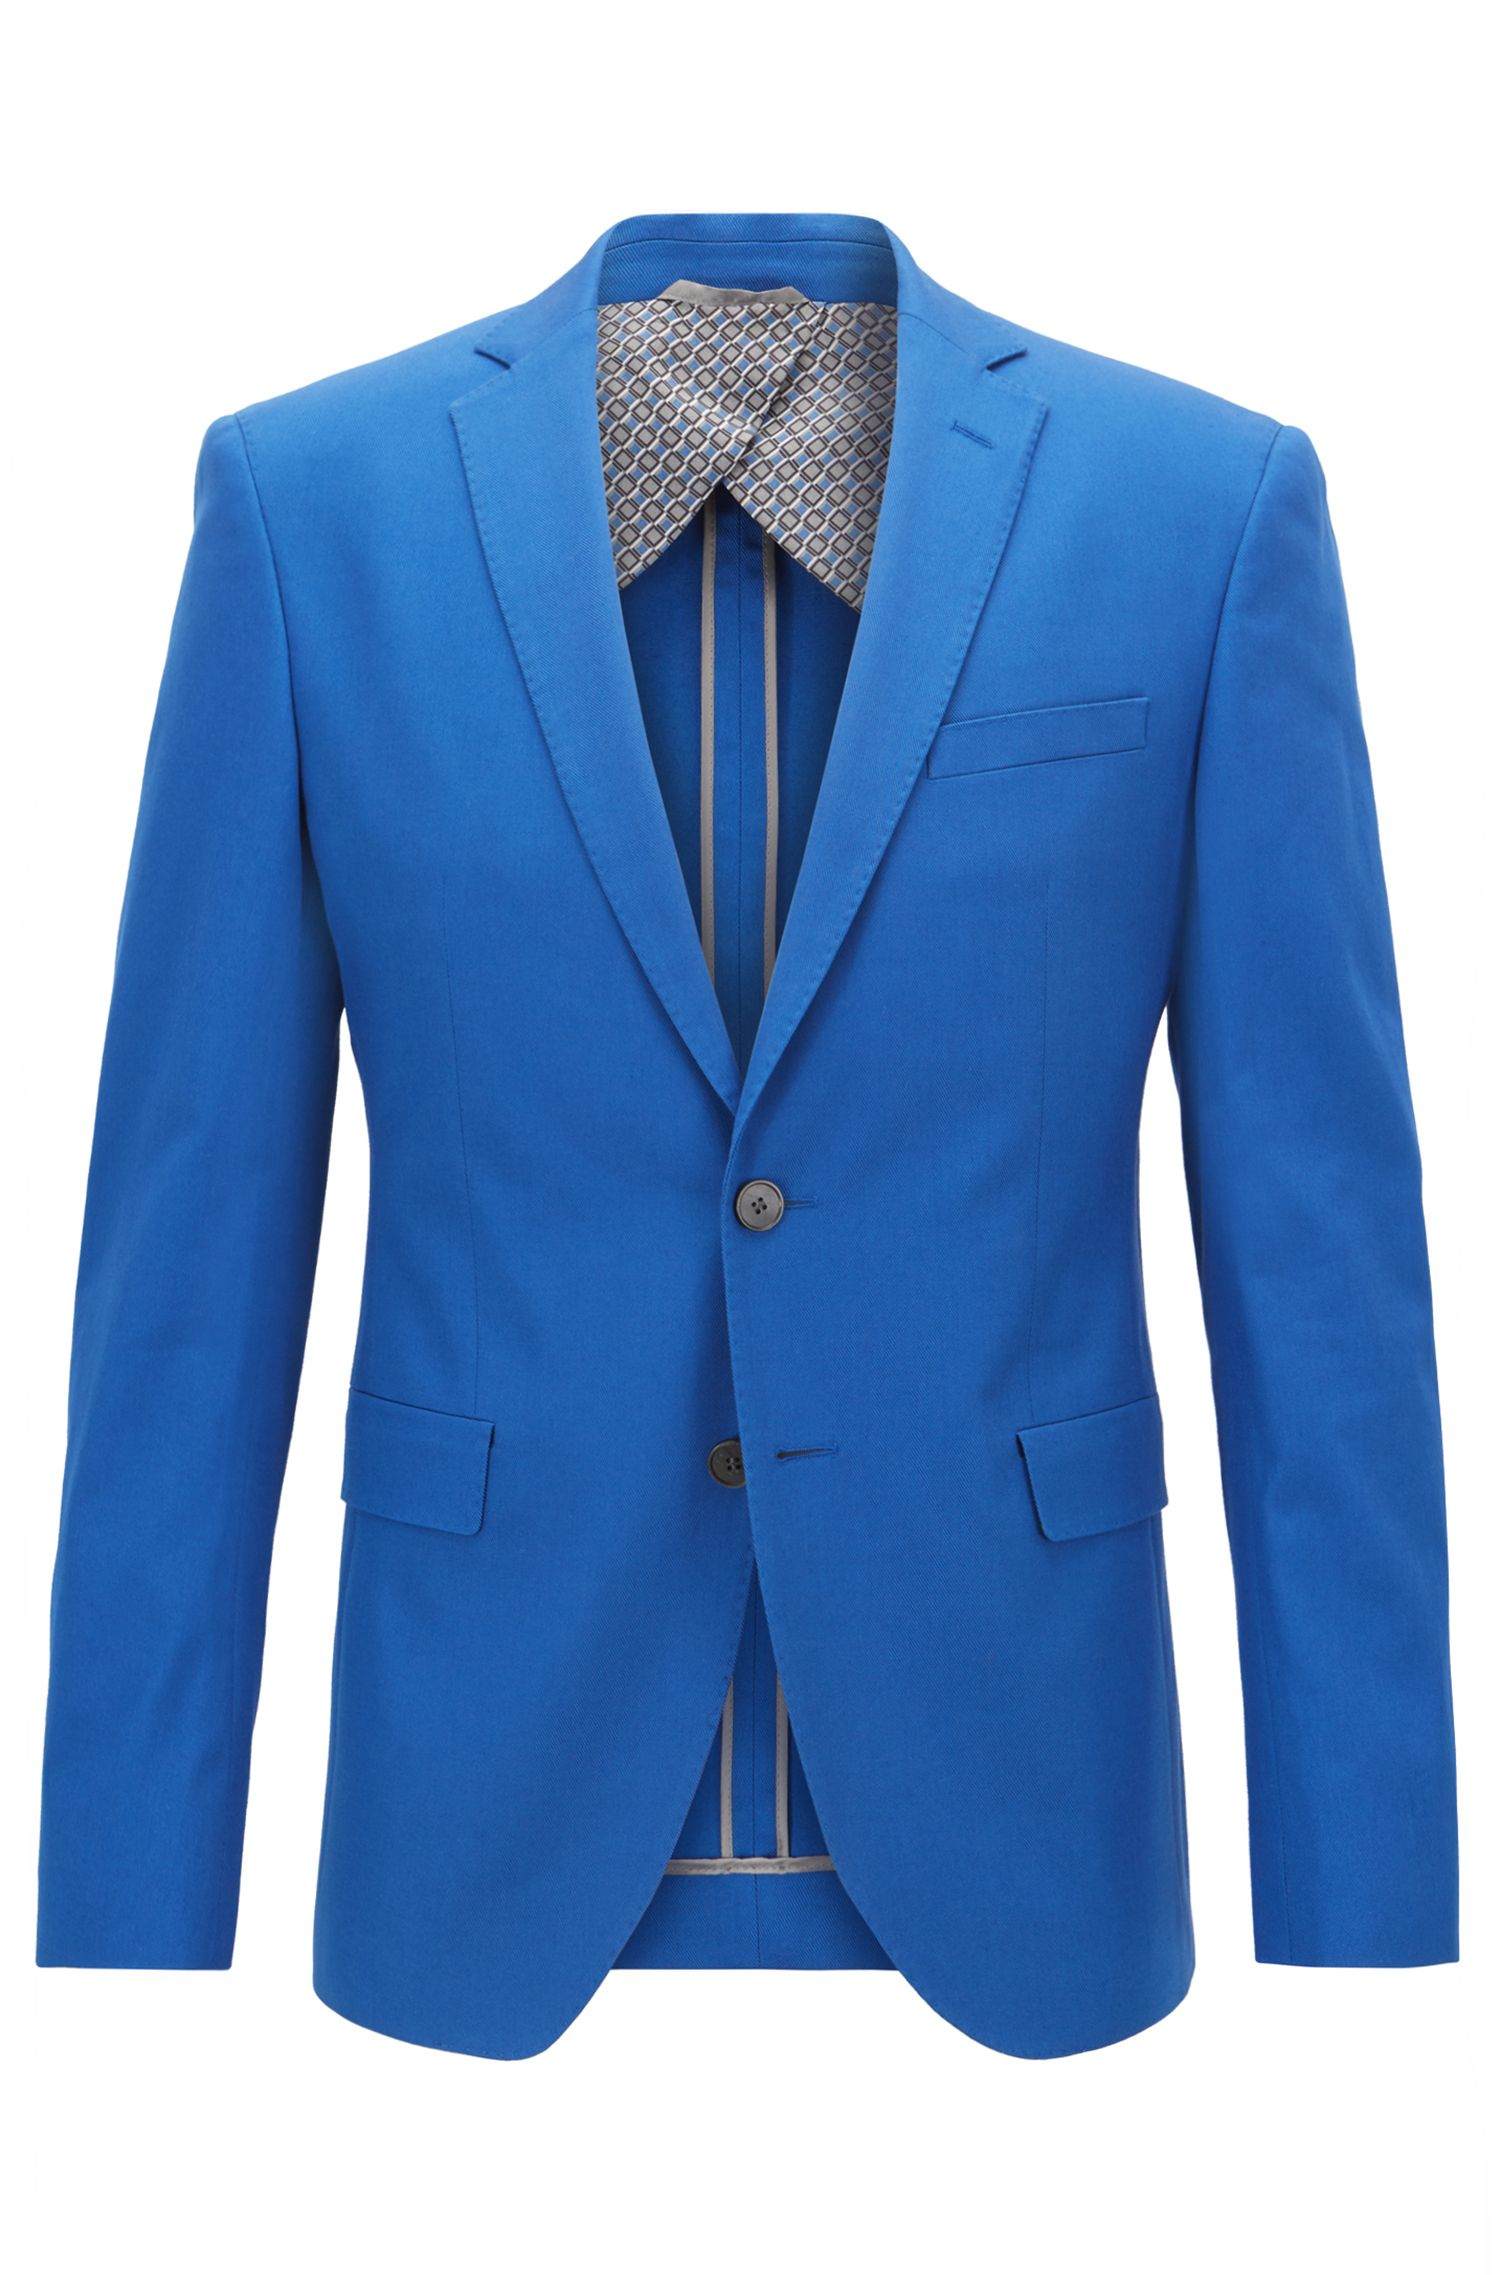 Extra-slim-fit jacket in Italian stretch-cotton